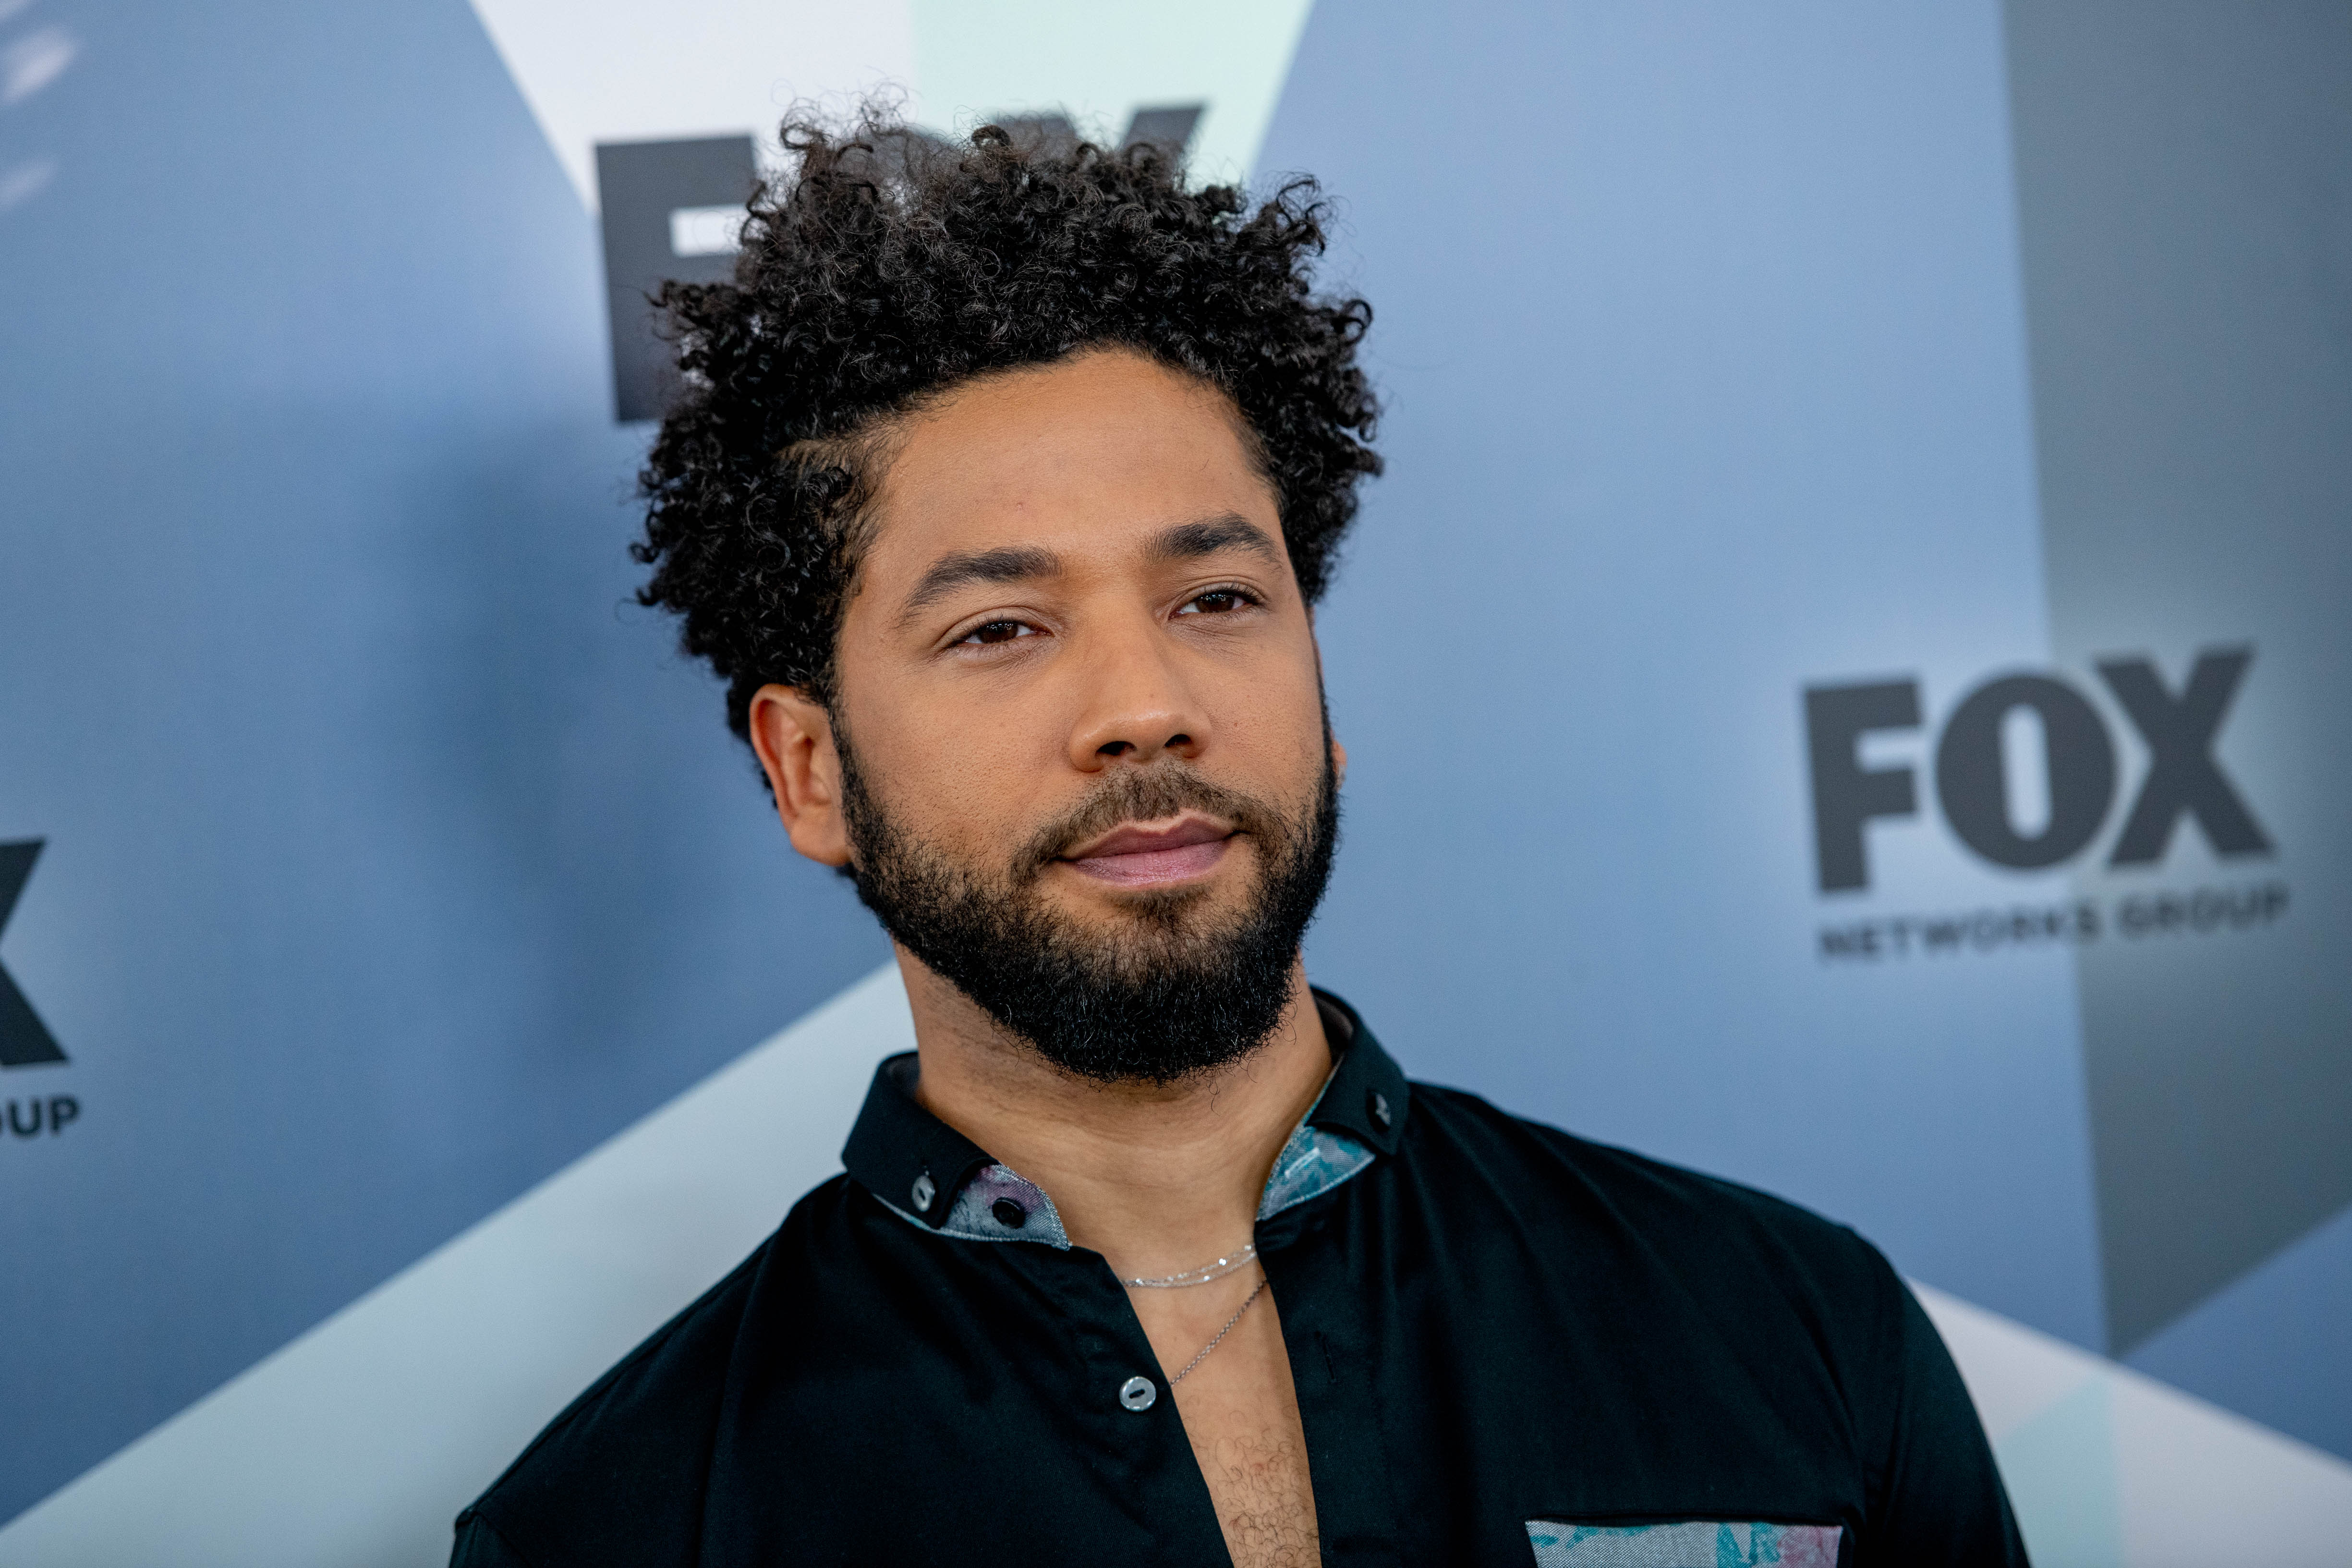 Jussie Smollett attends the 2018 Fox Network Upfront. May, 2018. | Photo: GettyImages/Global Images of Ukraine